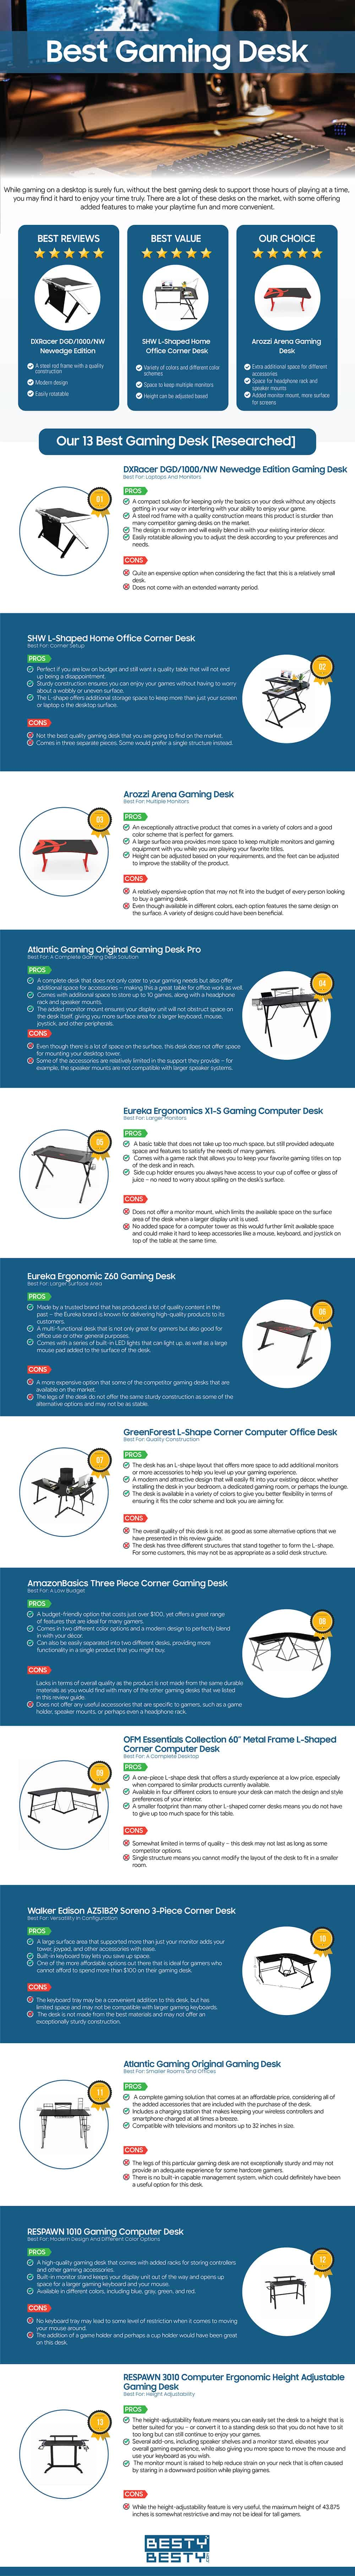 Top Gaming Desks infographic by bestybesty.com